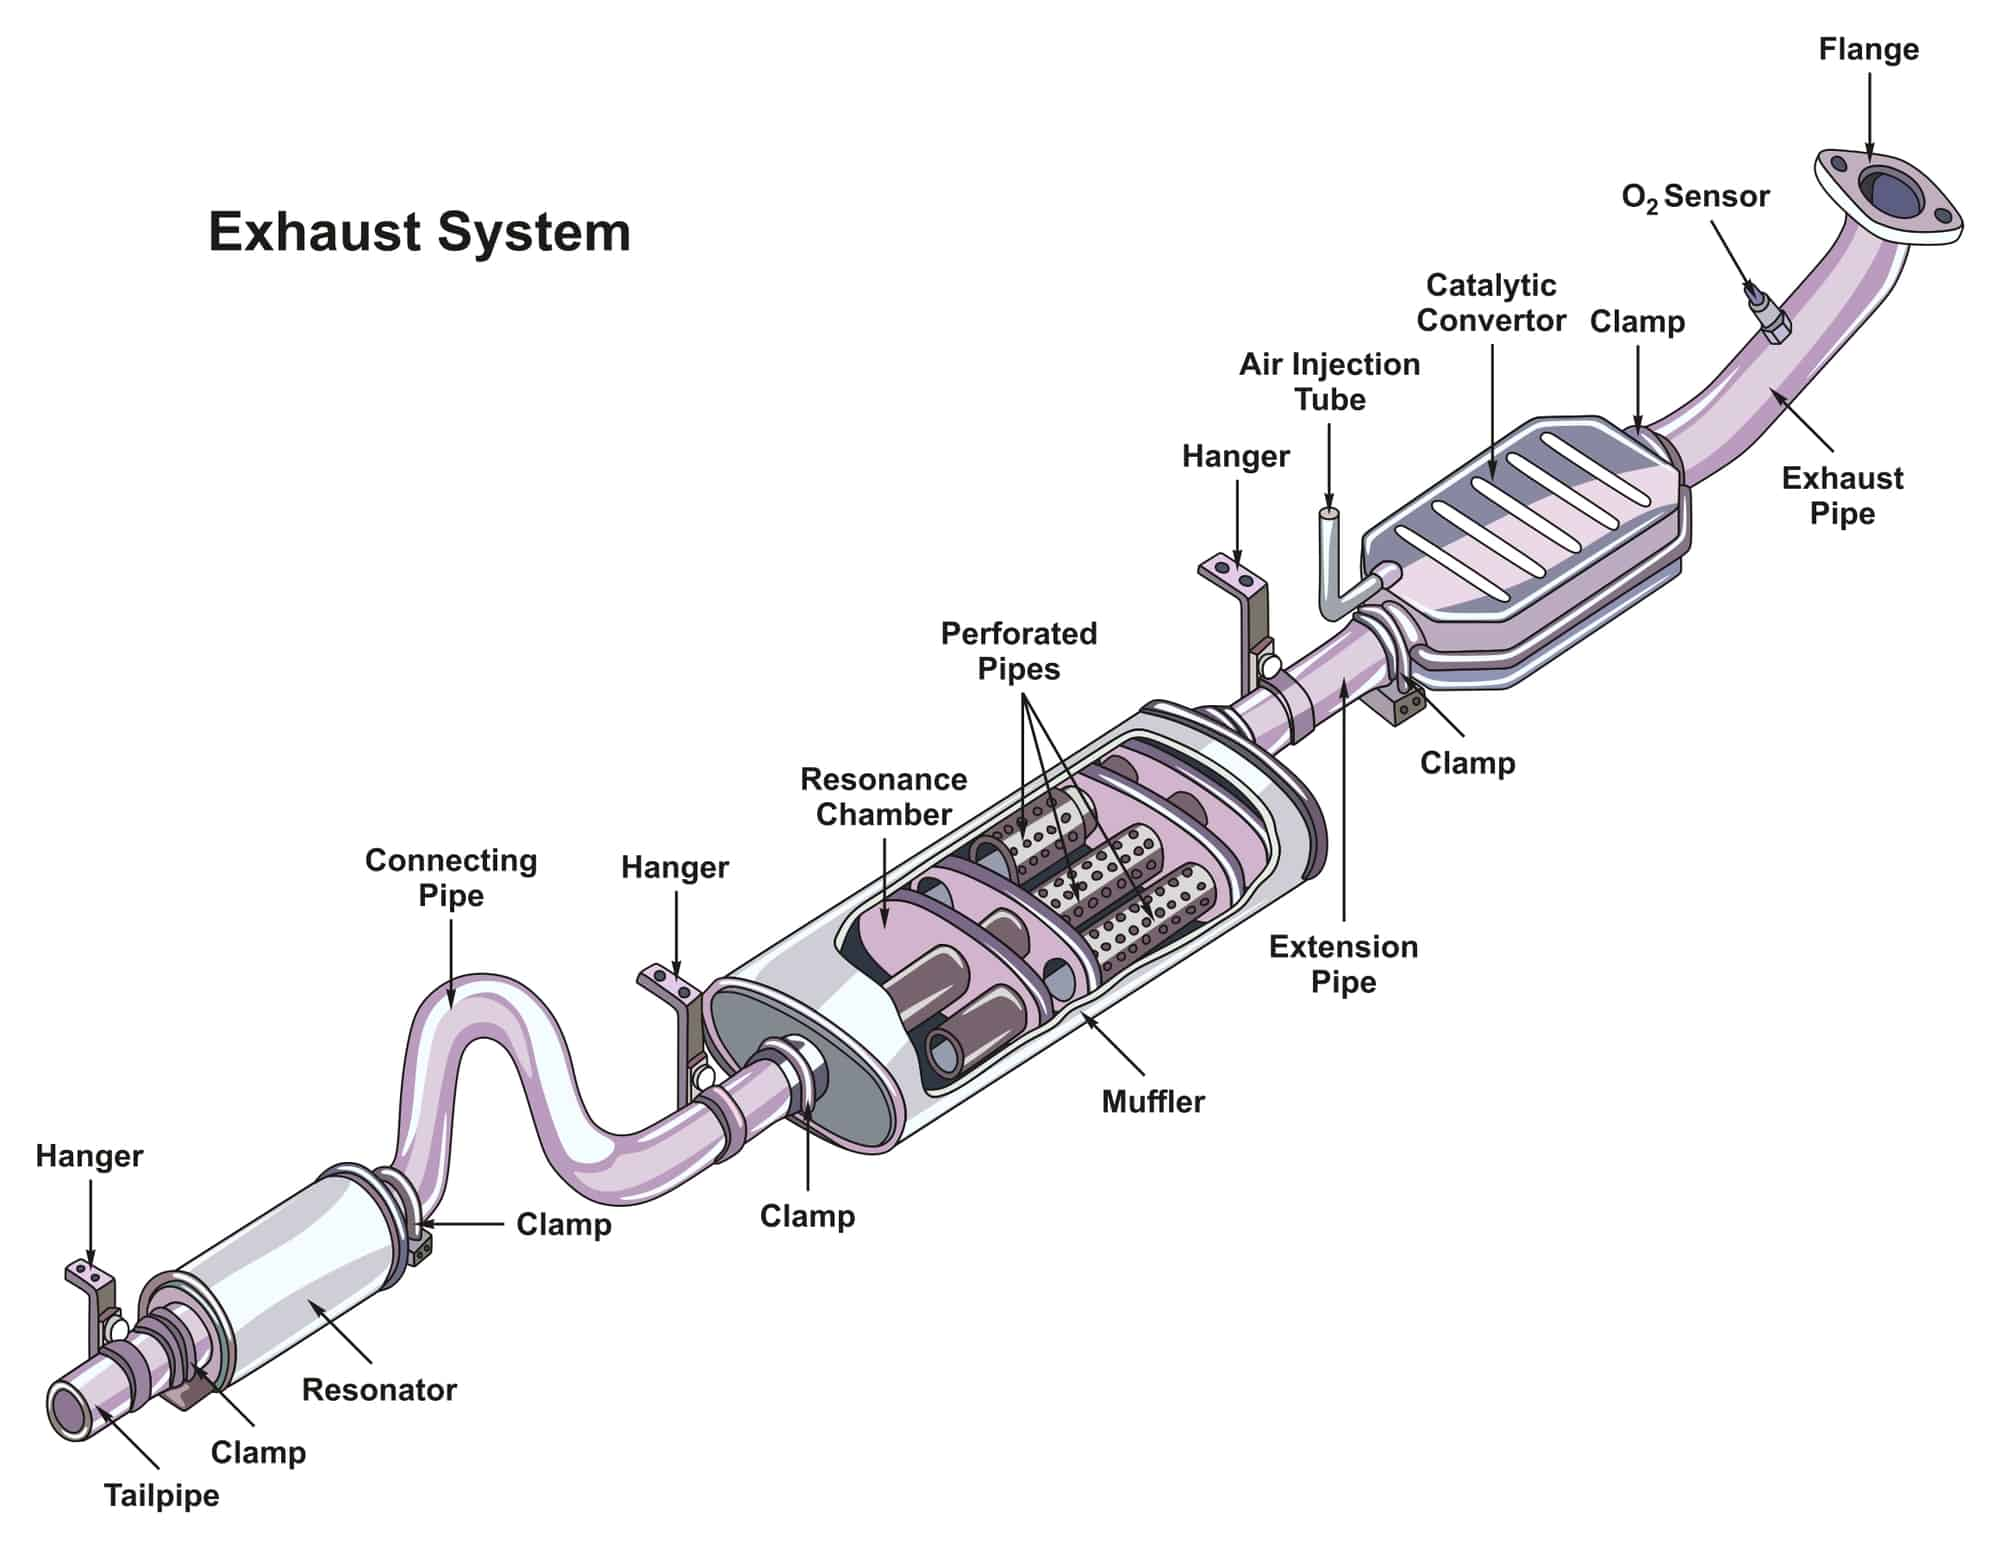 catalytic converter on exhaust system